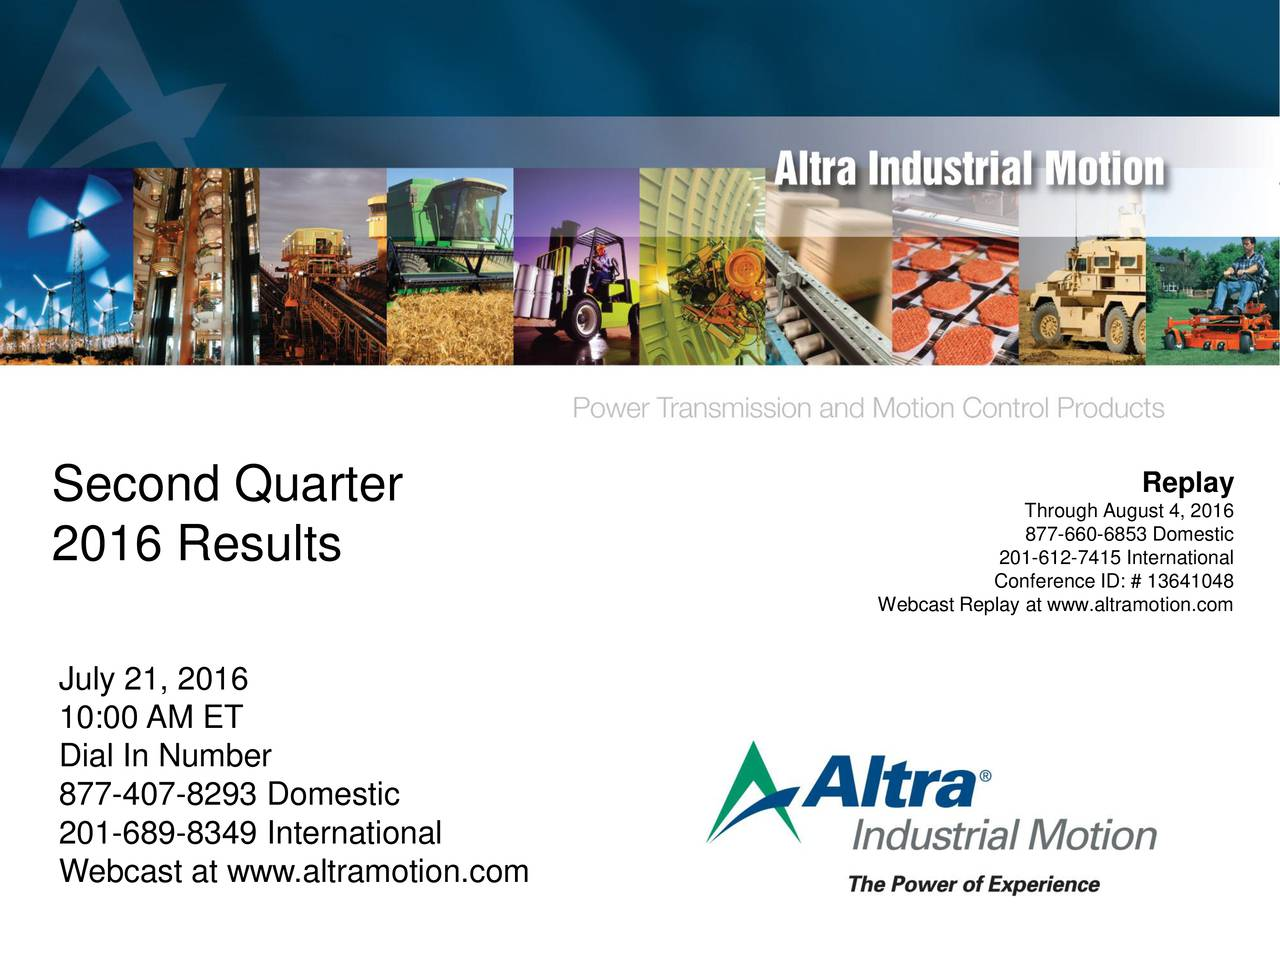 Second Quarter Through August 4, 2016 877-660-6853 Domestic 2016 Results 201-612-7415 International Webcast Replay at www.altramotion.com July 21, 2016 10:00 AM ET Dial In Number 877-407-8293 Domestic 201-689-8349 International Webcast at www.altramotion.com